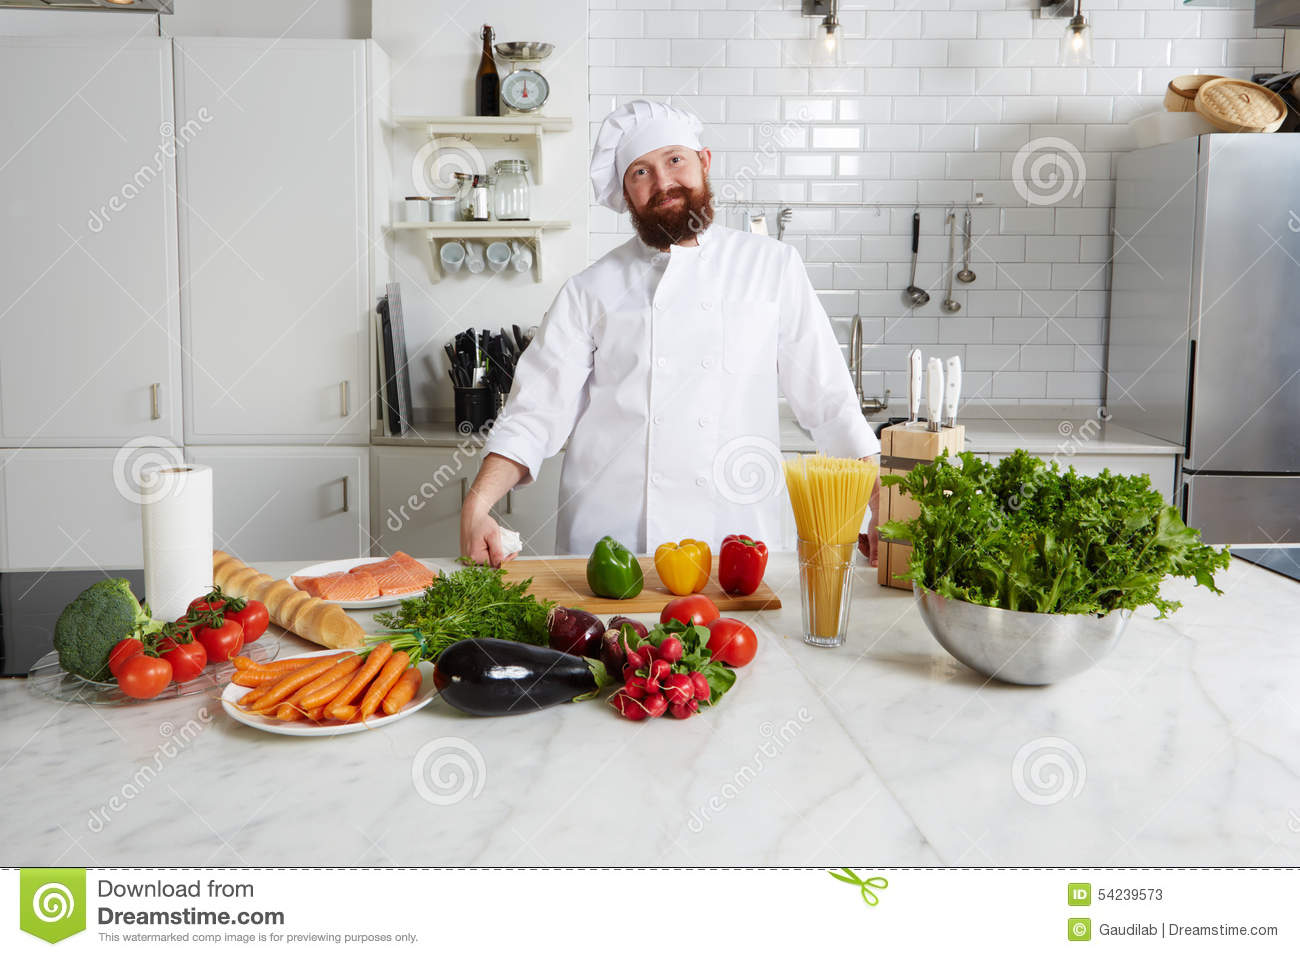 Enjoyable smiling chef with fresh vegetables on big table standing in the kitchen